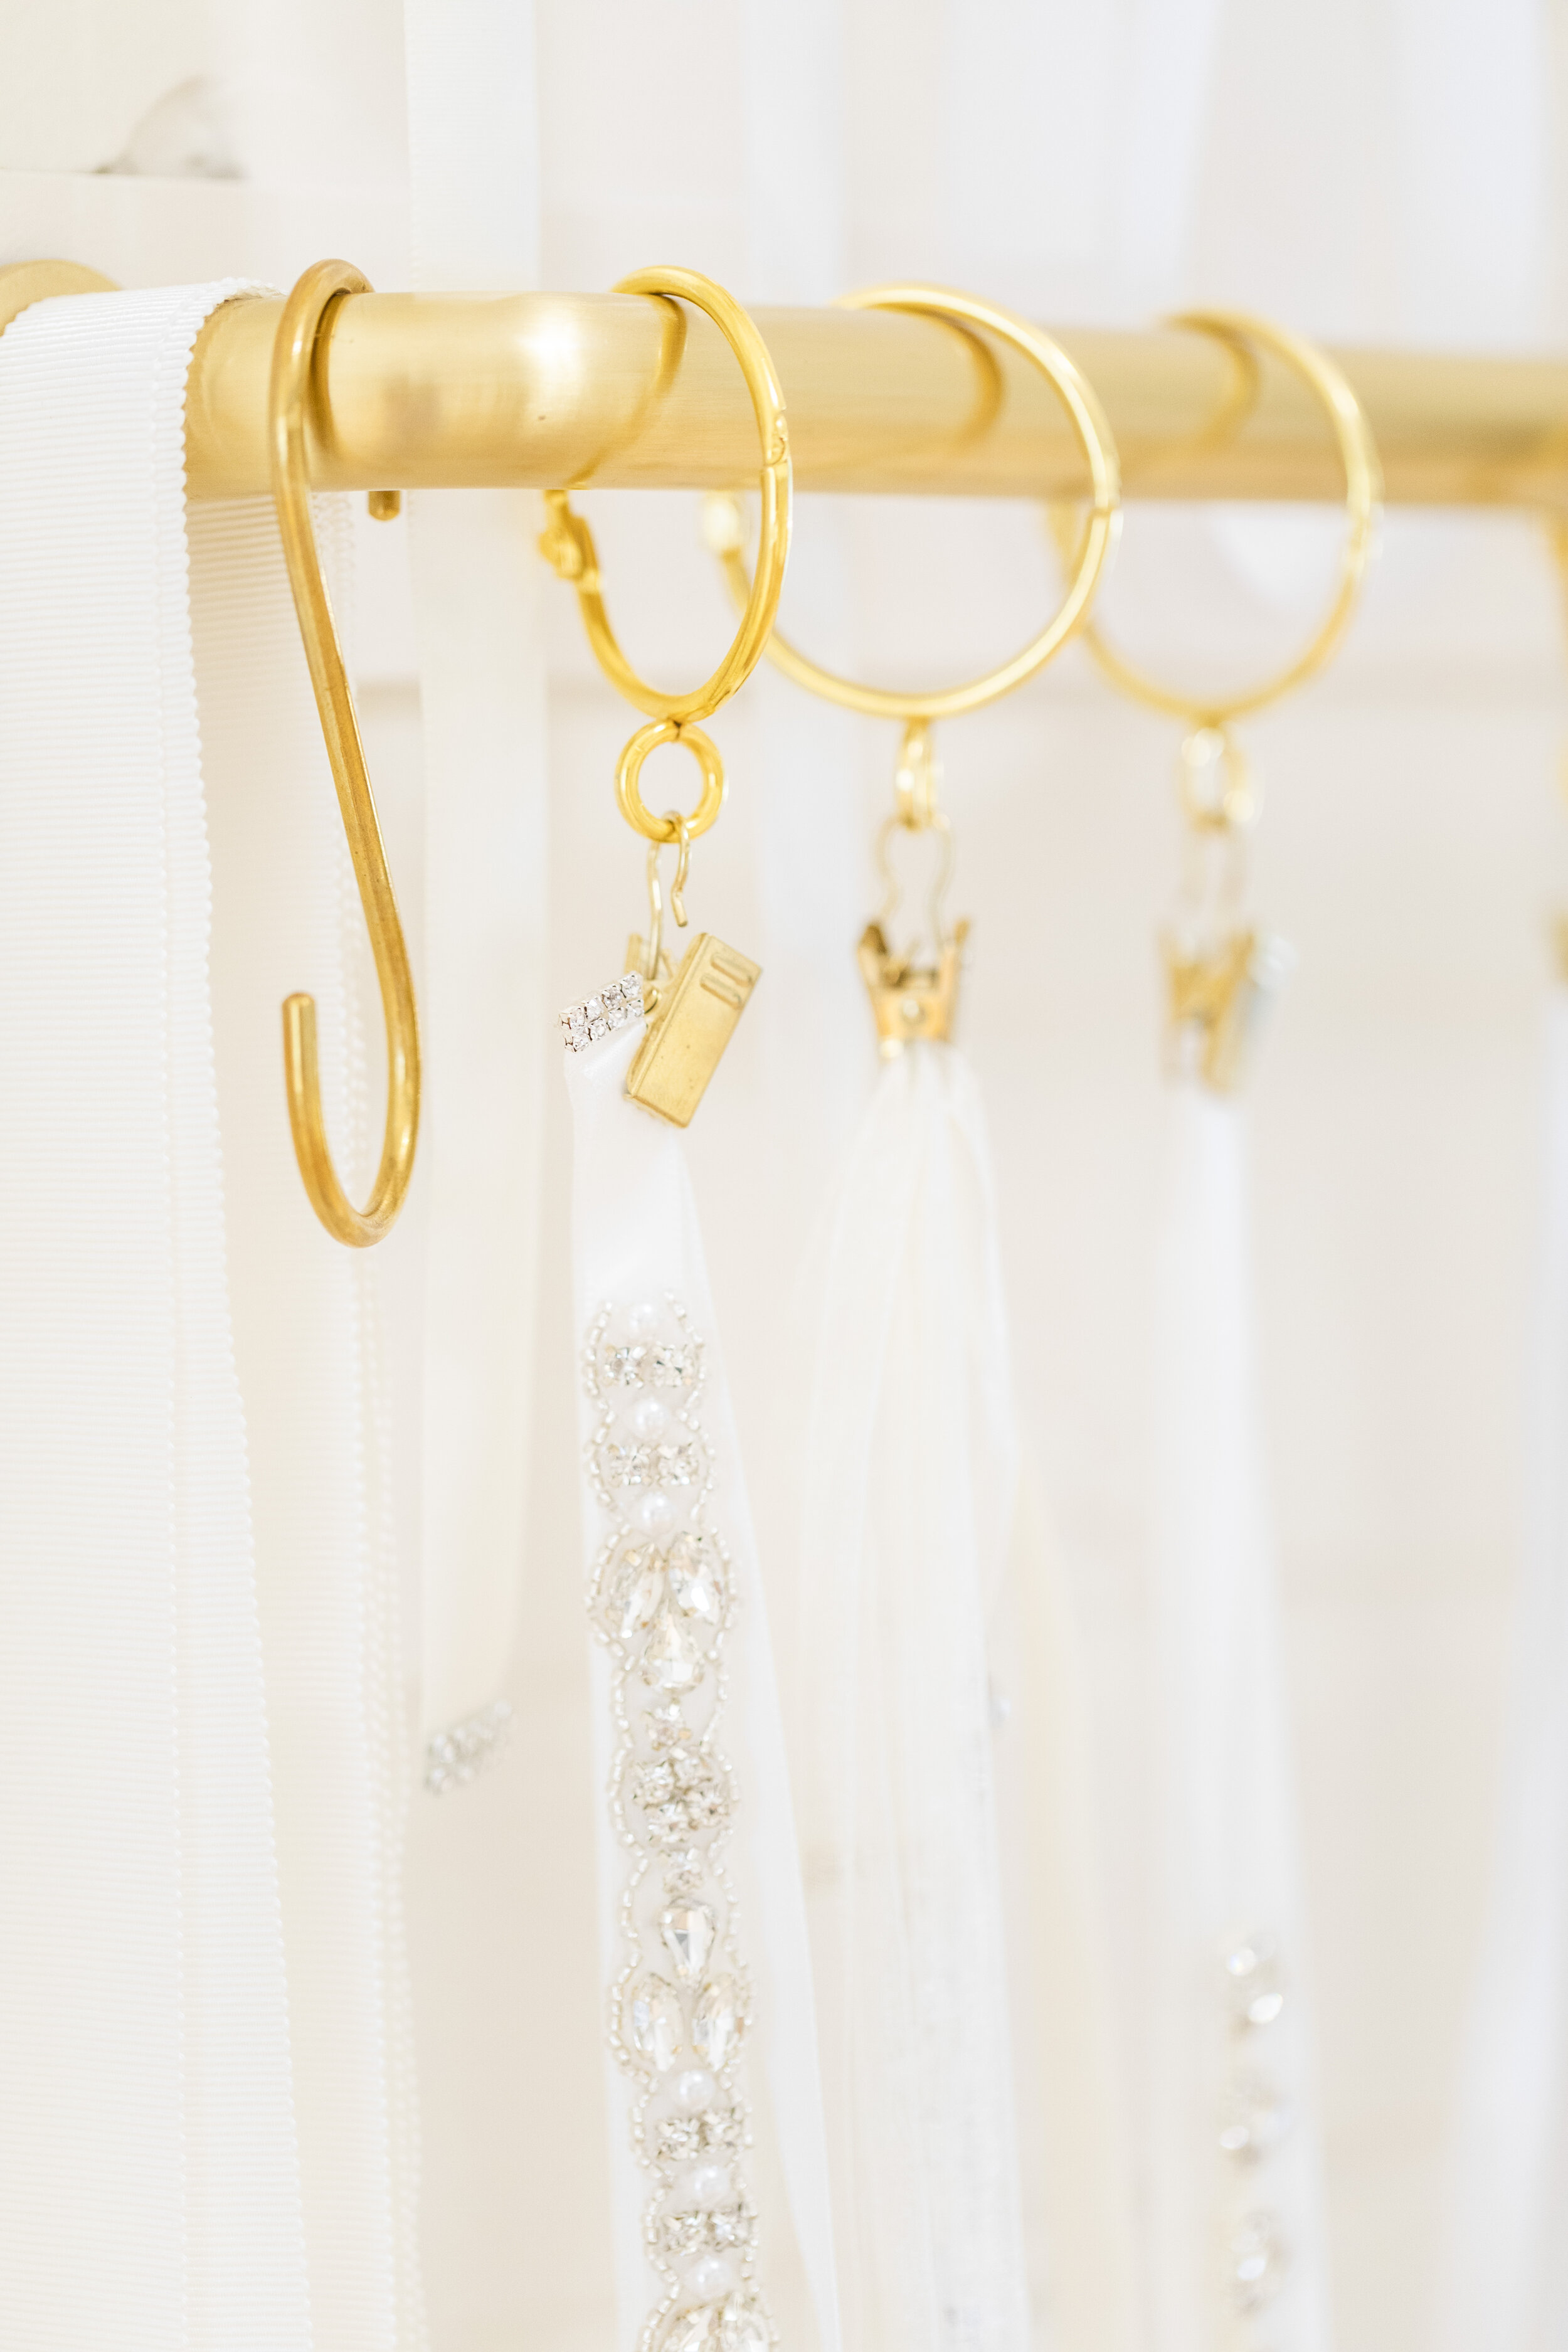 wedding veils top off your look simple or studded with jewels take your wedding dress to the next level one piece can change the whole ensemble unique styling tips for your wedding day provo utah utah brides make it what you want wedding outfit inspo #waystomakeyourgownunique #howtostyleyourweddingdress #jewelry #belts #earrings #unique #bridetipsandtricks #bracelets #necklaces #provoutah #claritylane